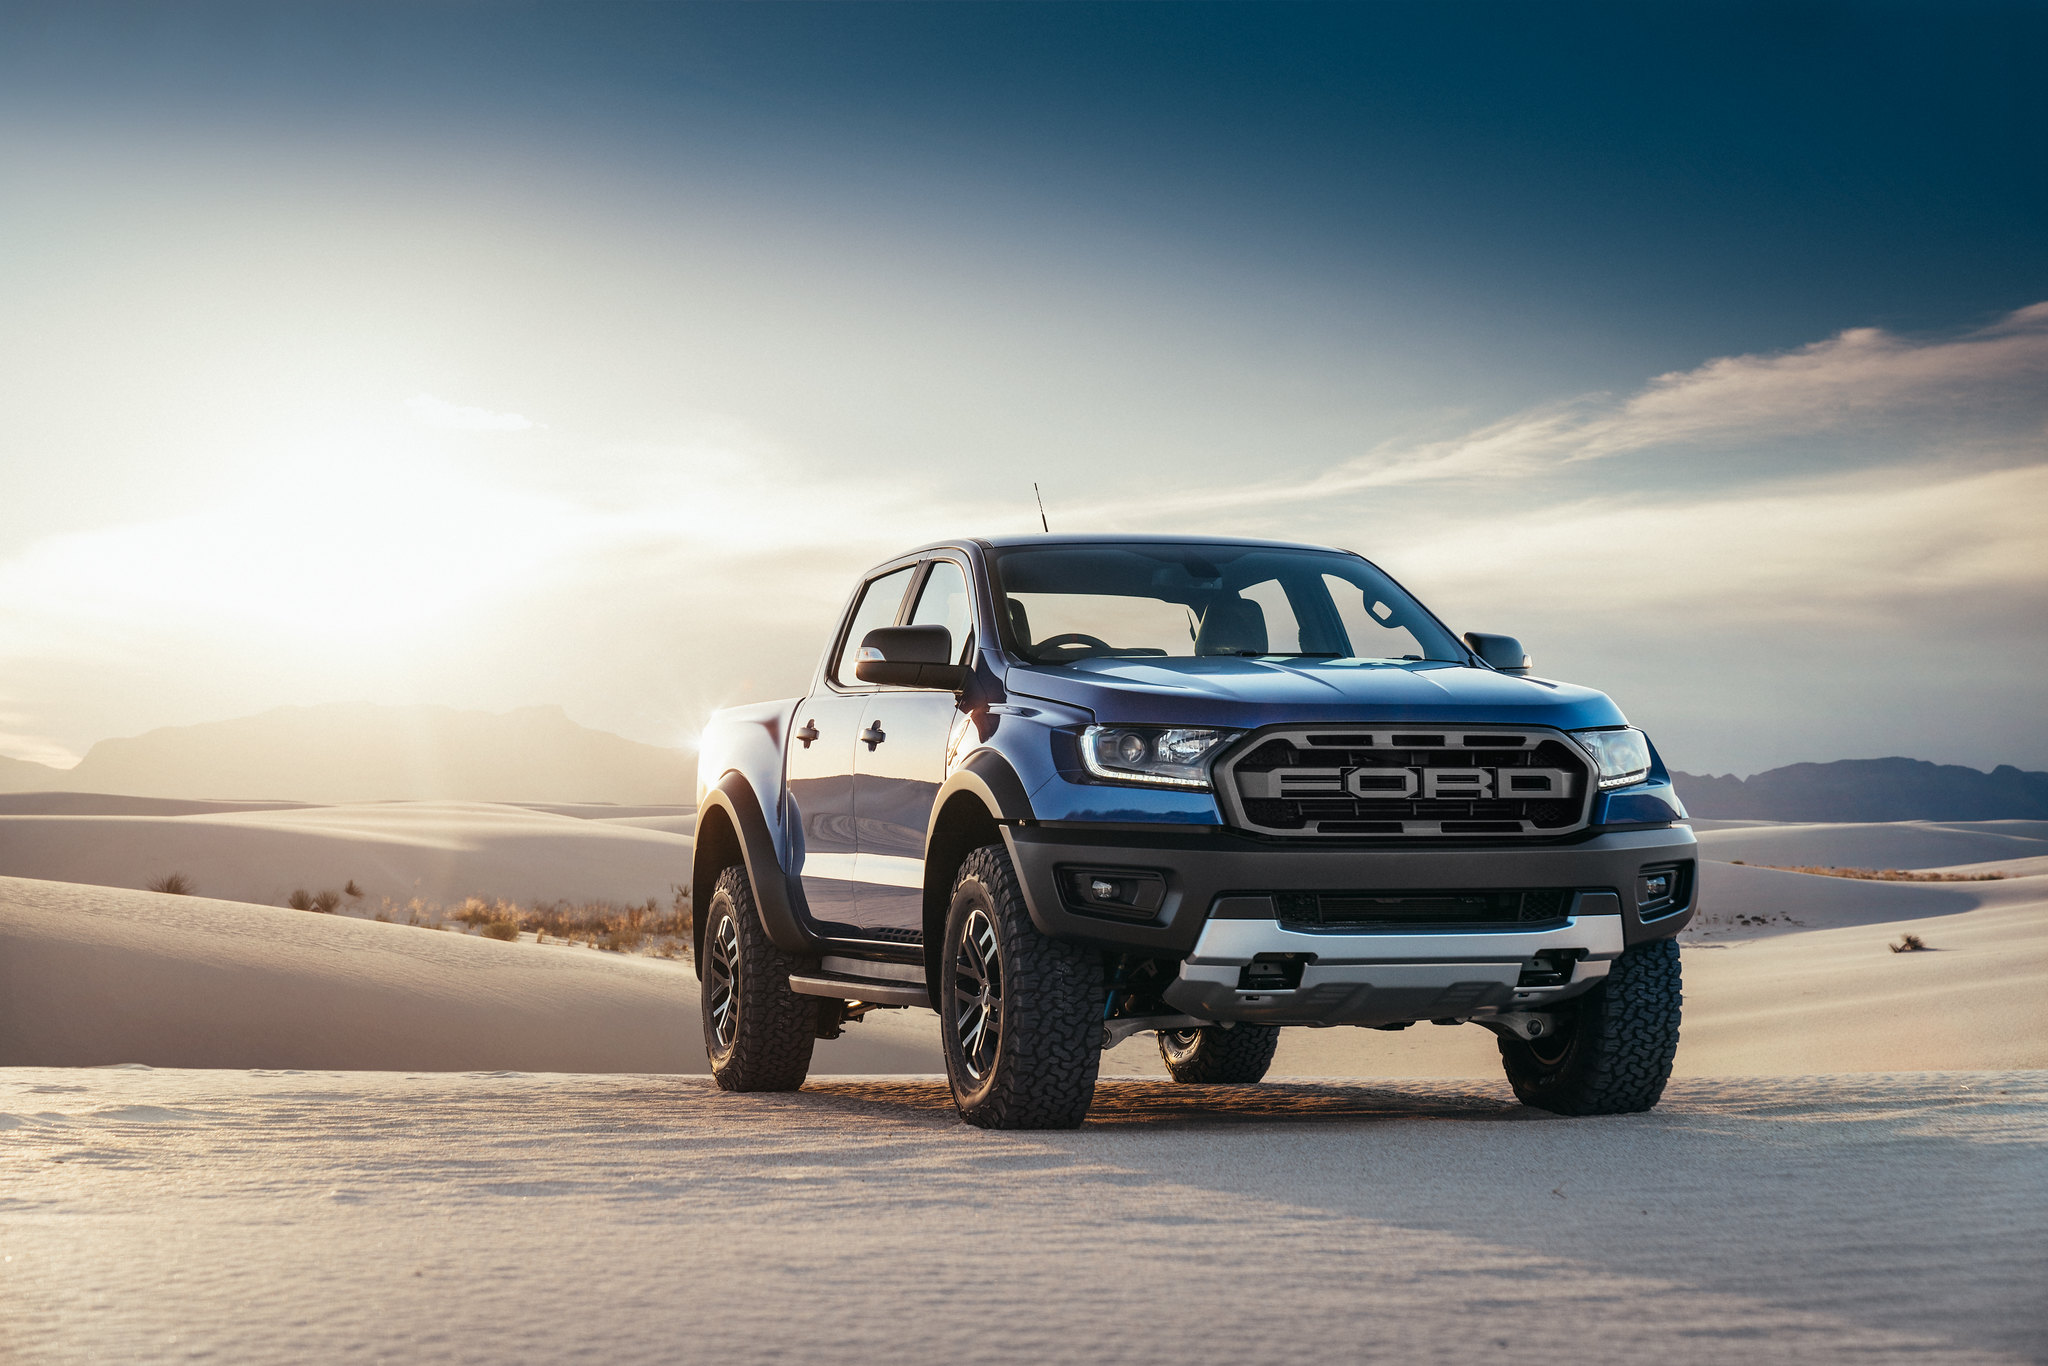 This is the Ford Ranger Raptor